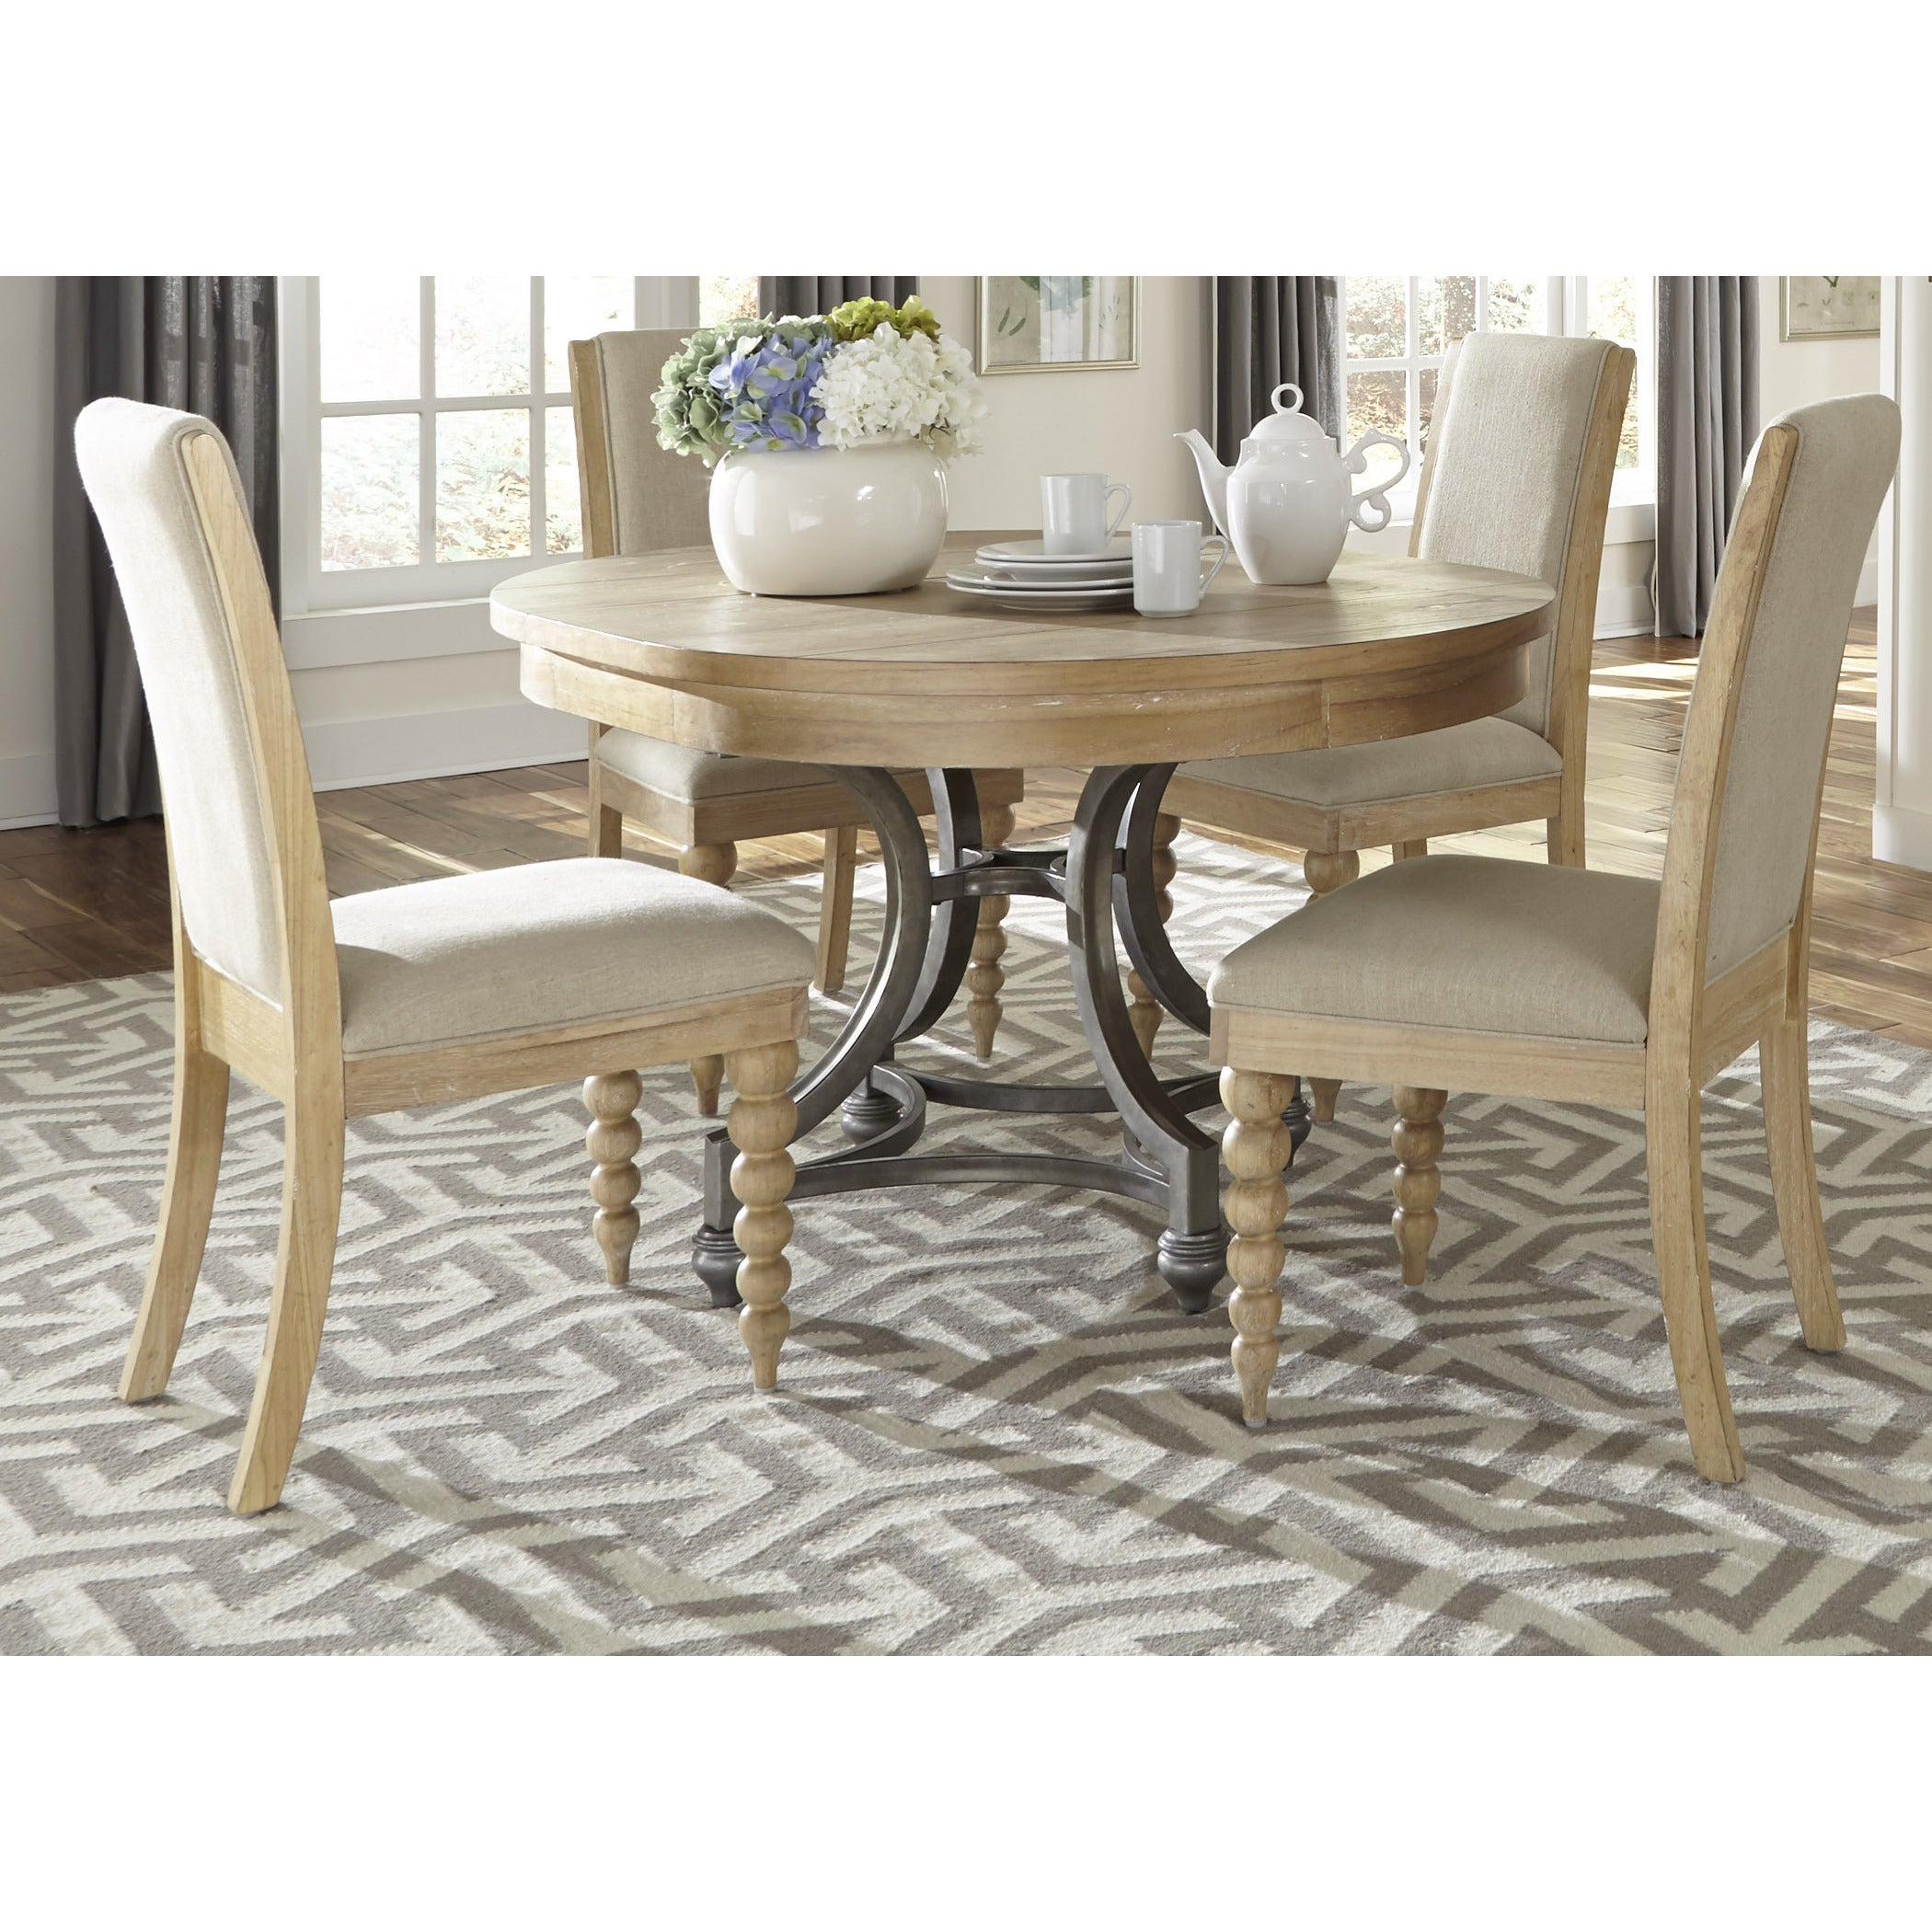 Harbor View Sand Round Dinette Table